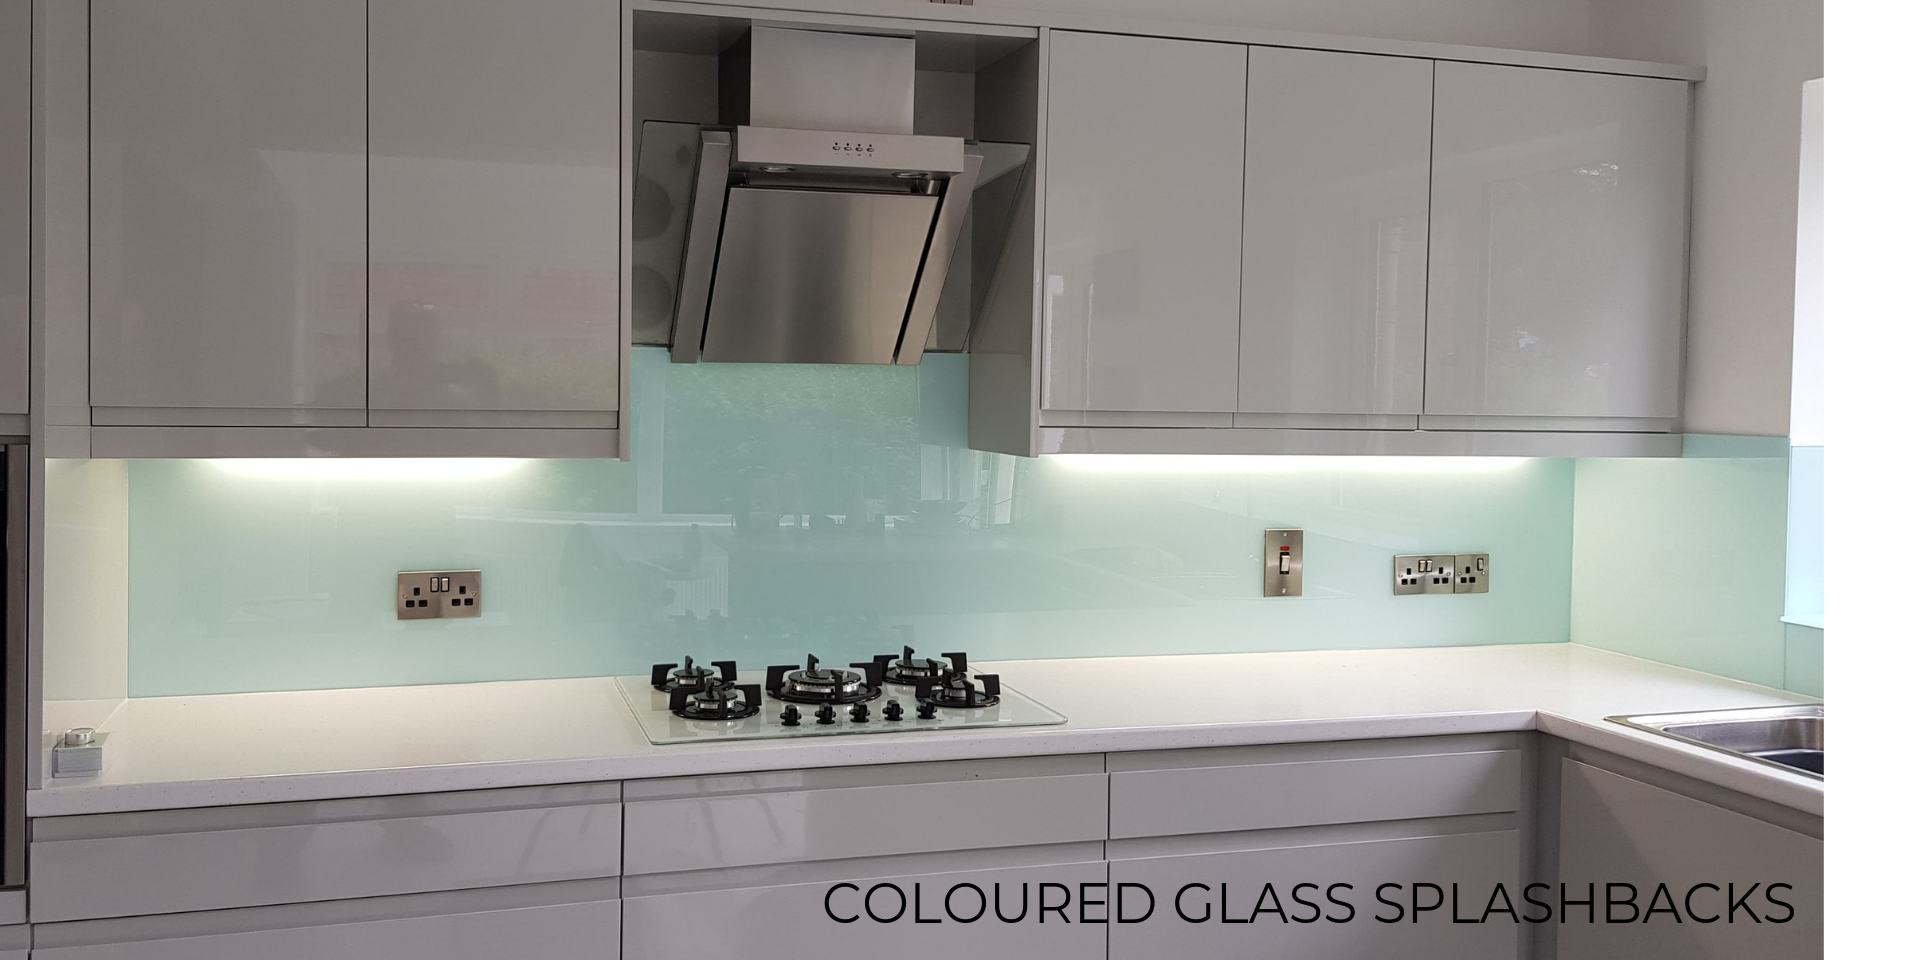 Coloured Glass Splashbacks for kitchens